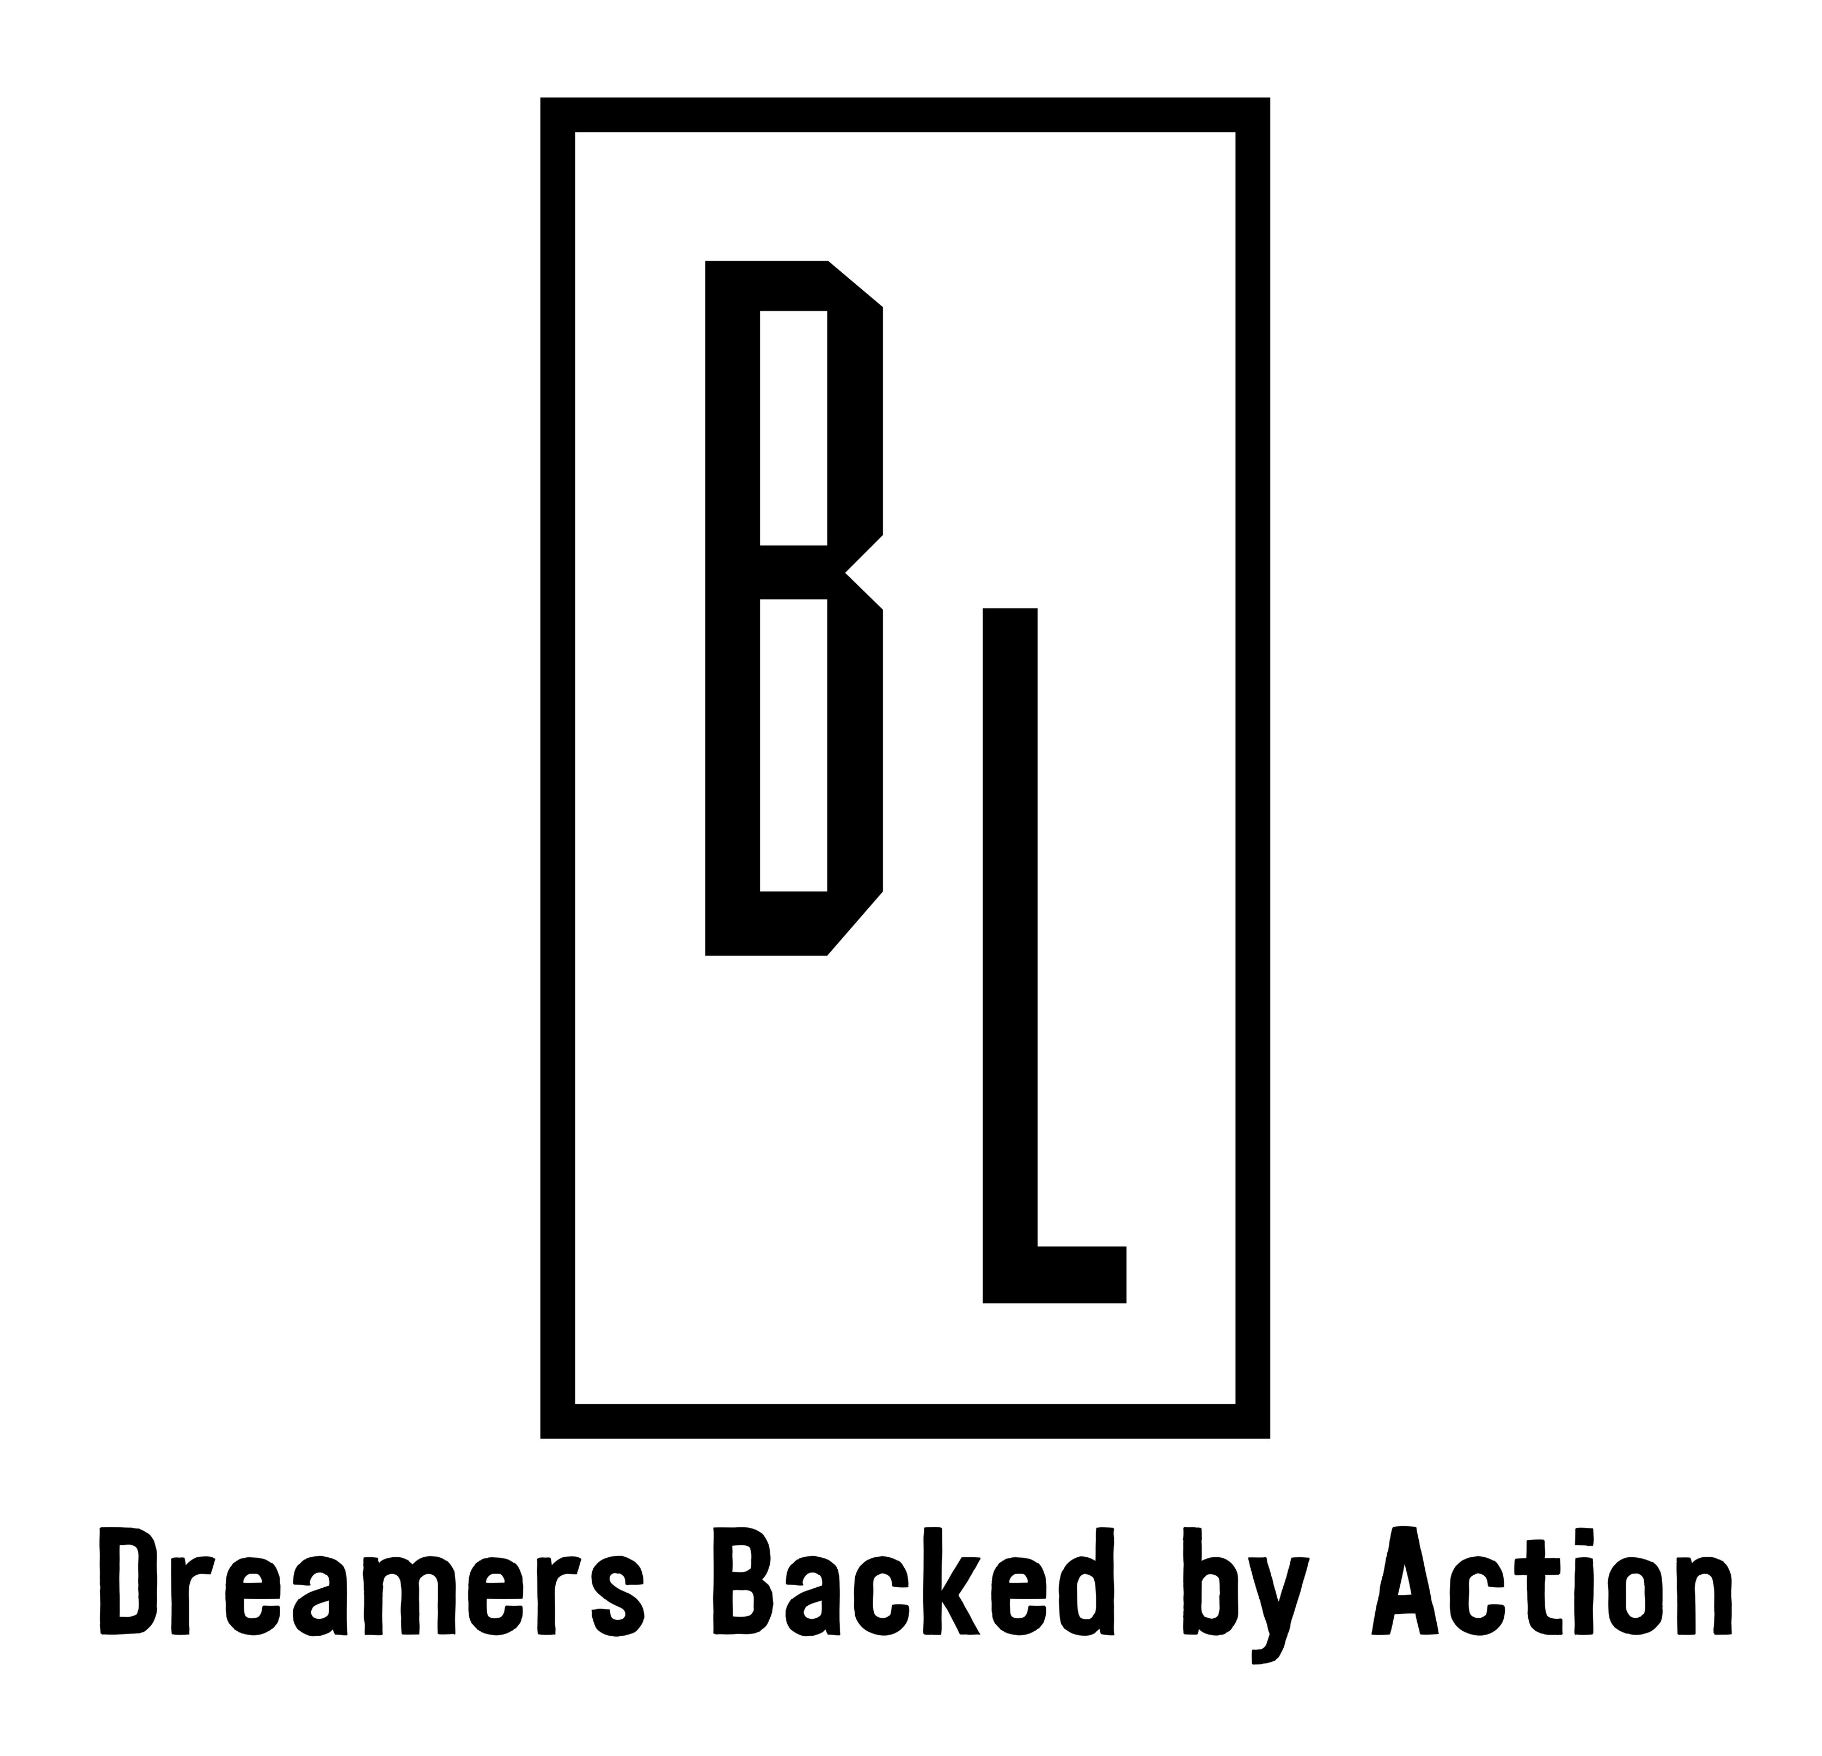 Dreamers Backed by Action